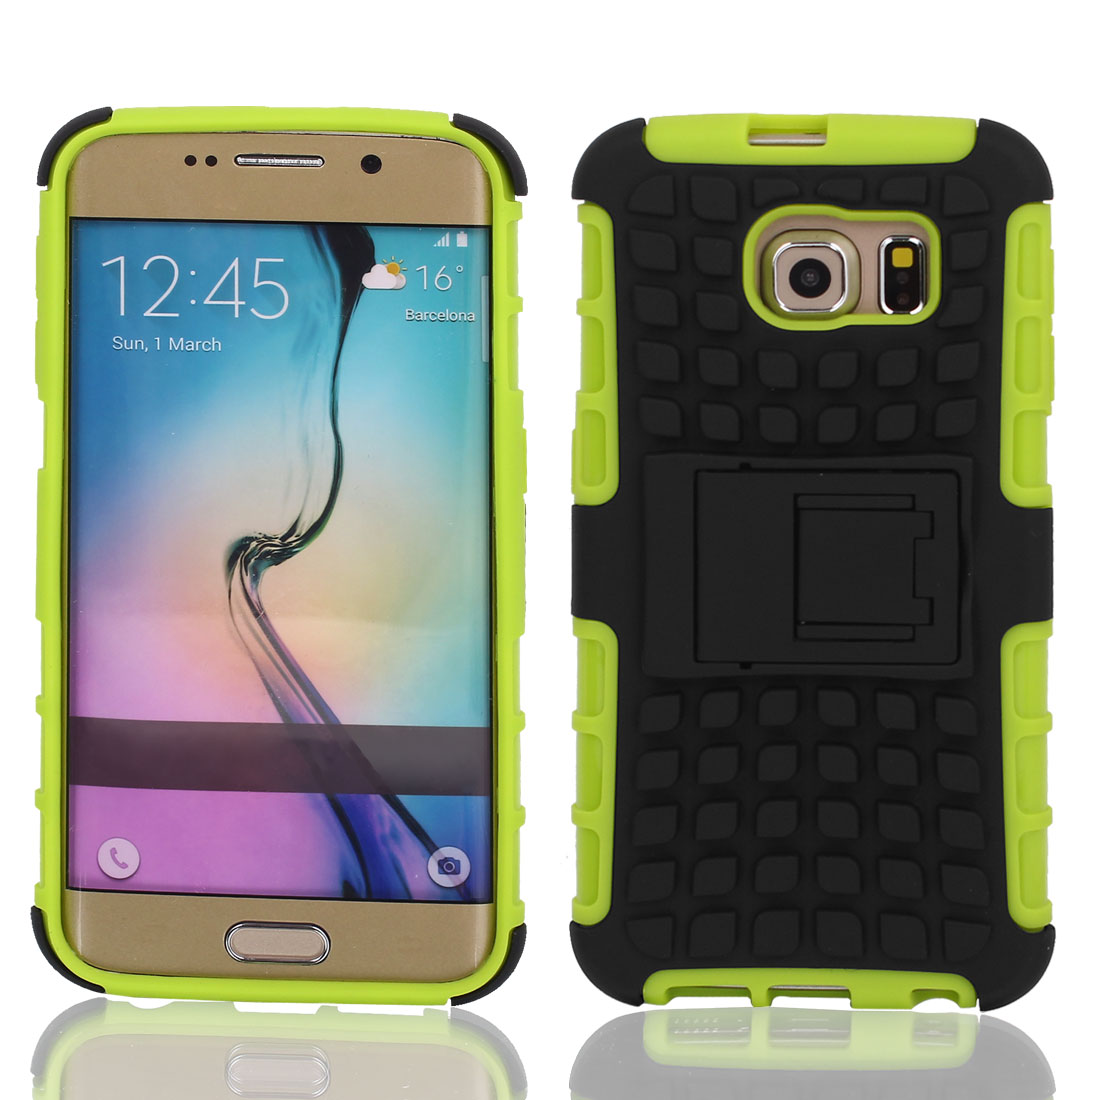 Non-slip Stand Case Cover Black Green + Film for G9200 Galaxy S6